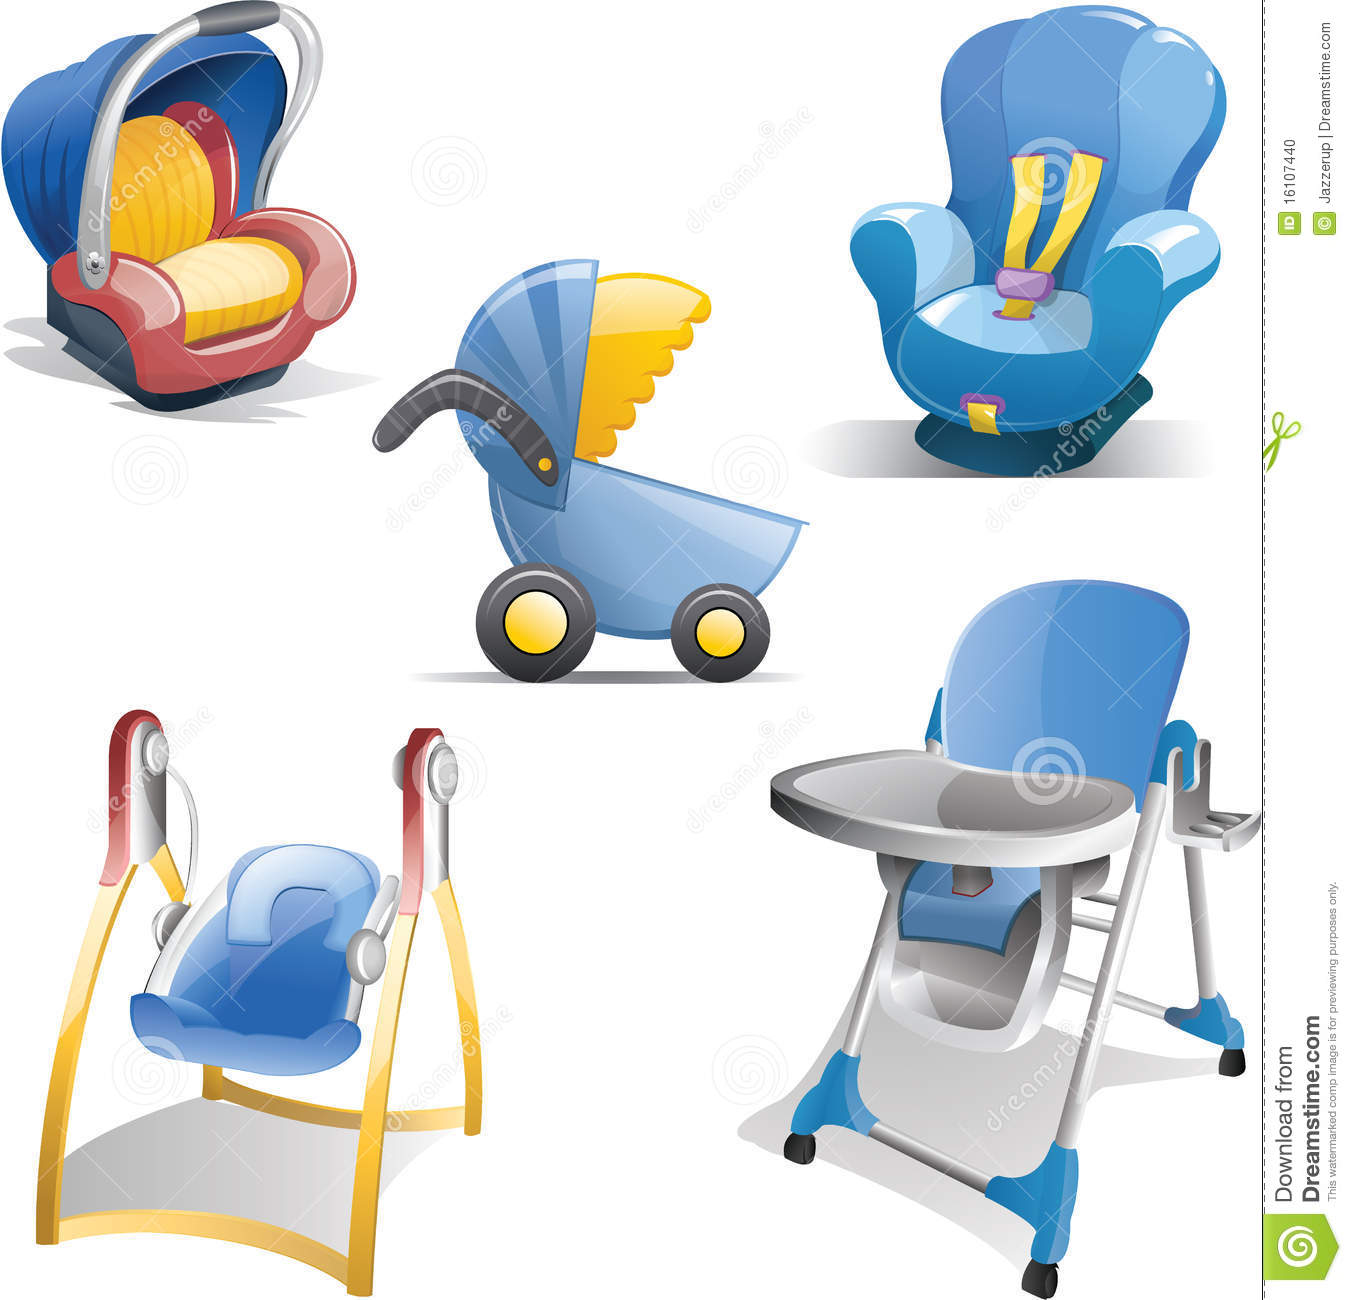 Baby Gear Icon Set Stock Photo - Image: 16107440